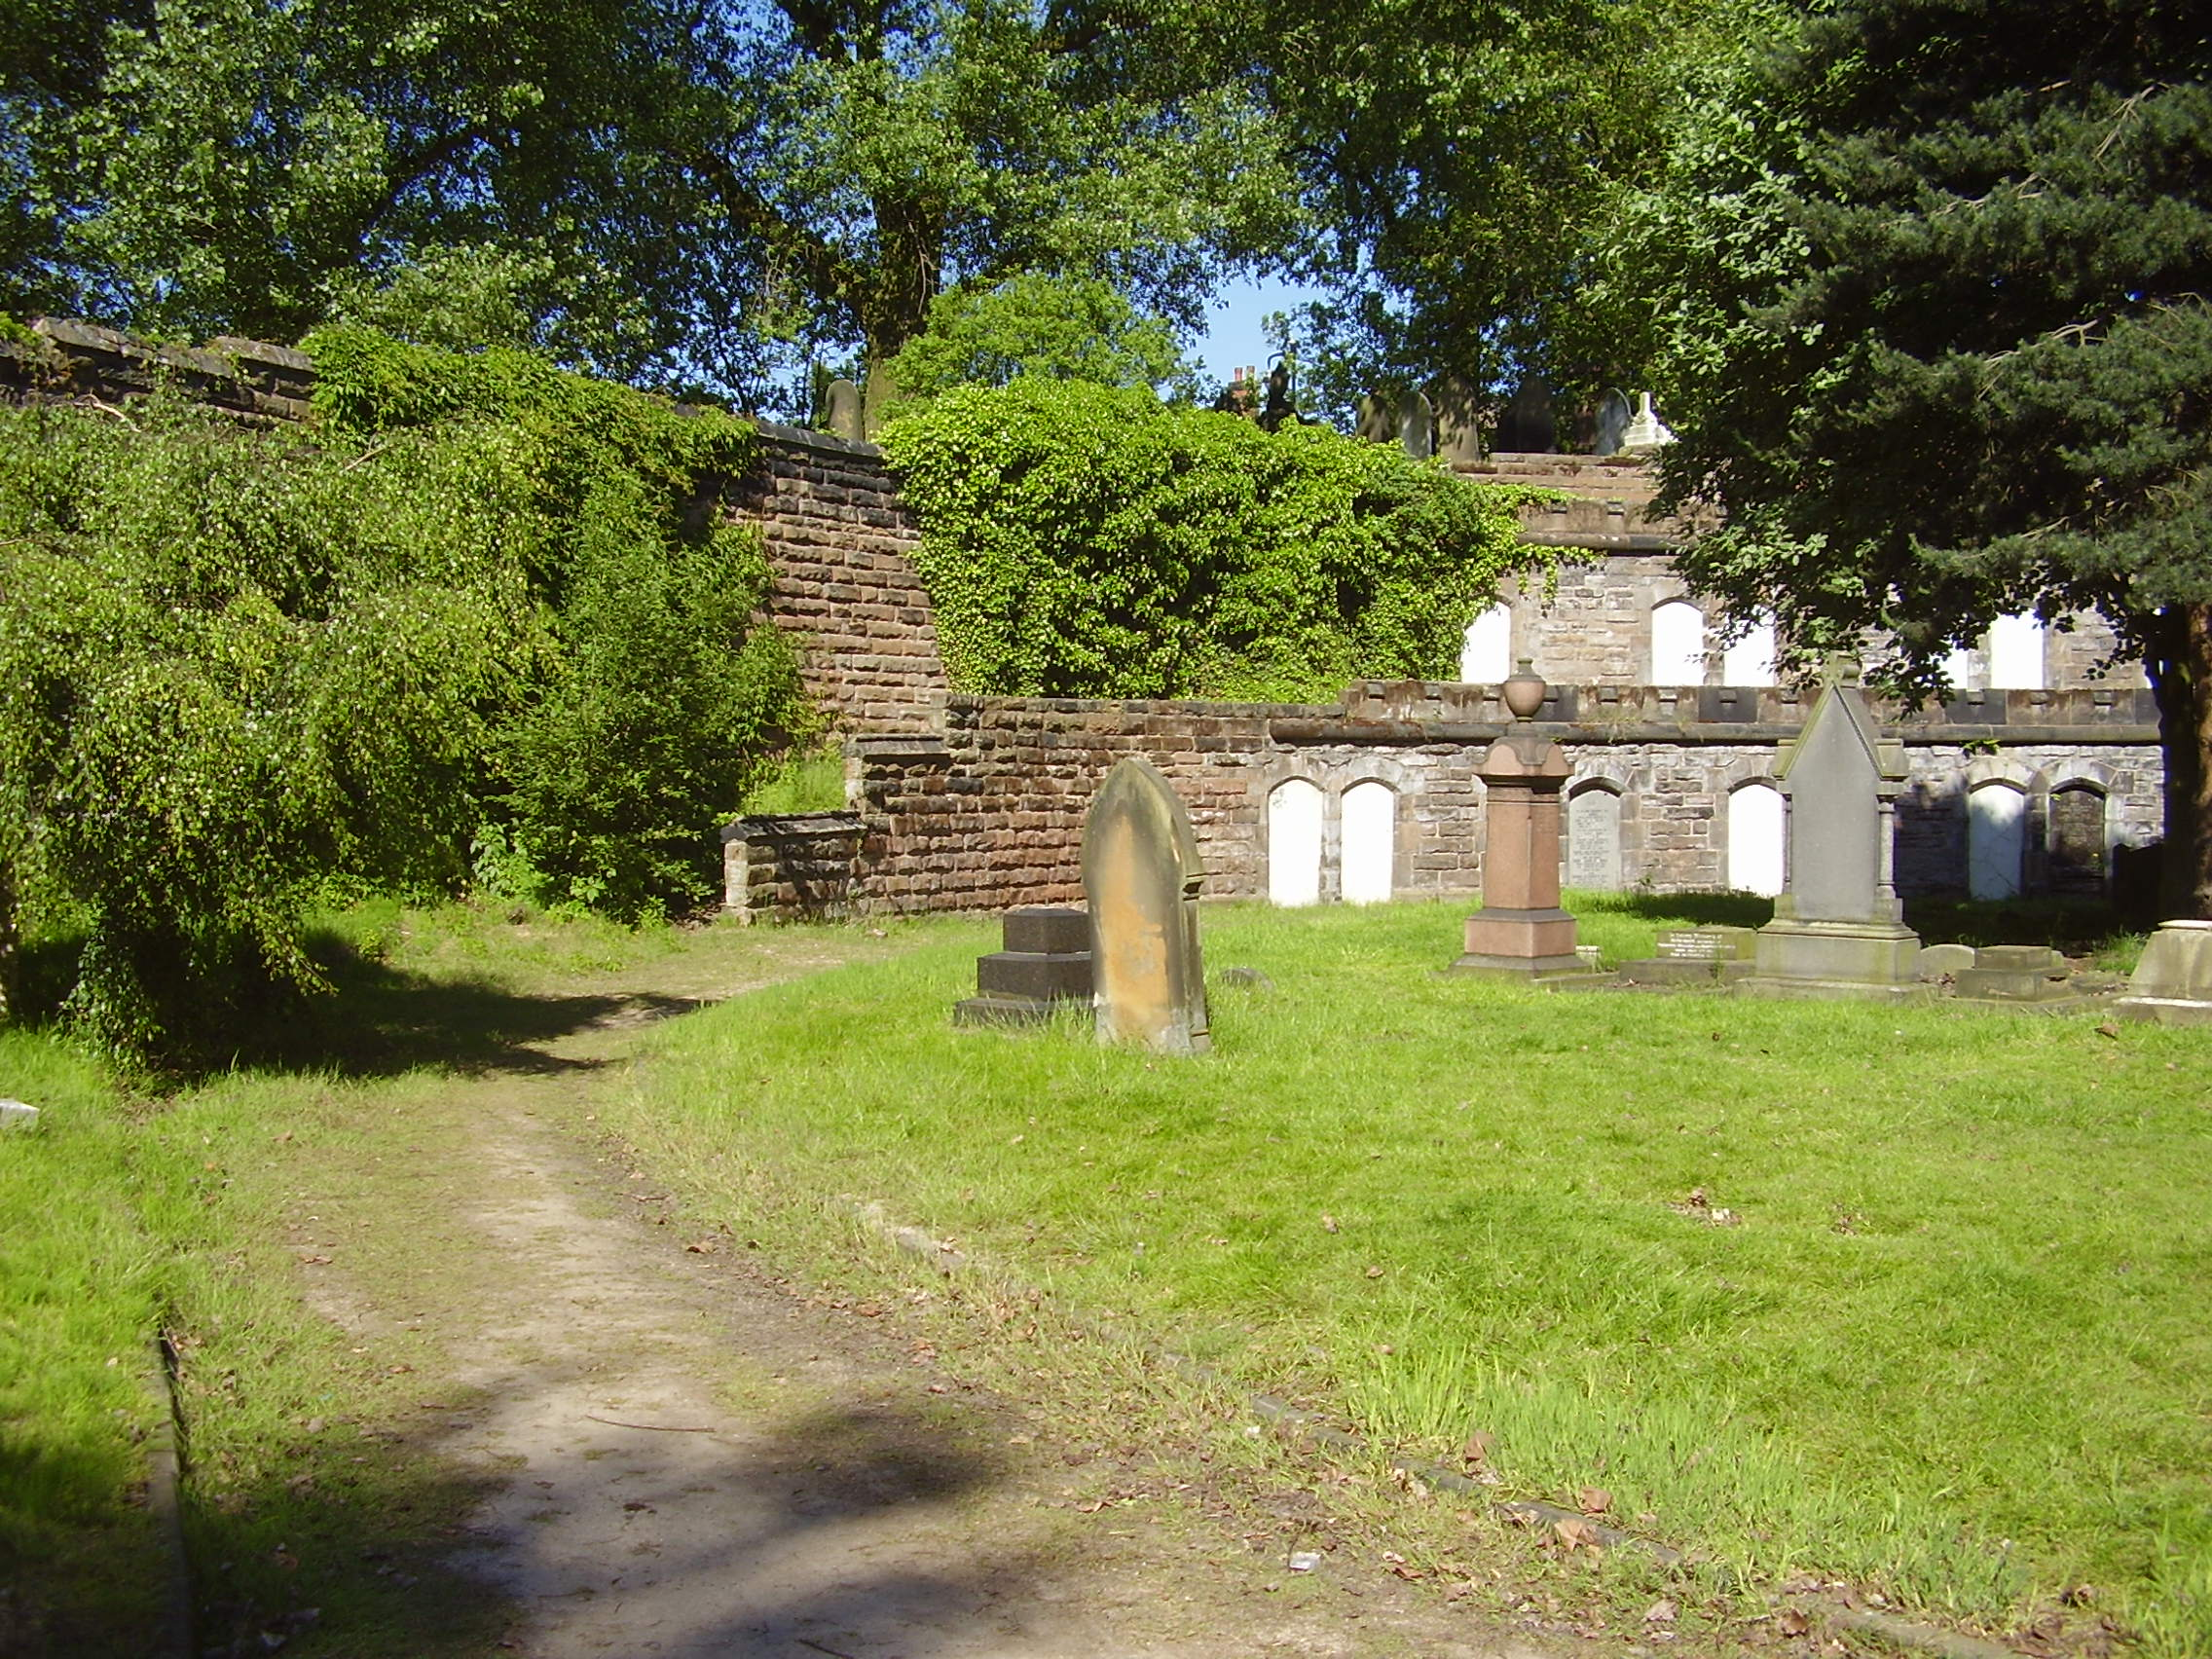 Photographed in 2008 Warstone Lane (Mint) Cemetery Catacombs in the Jewellery Quarter Birmingham